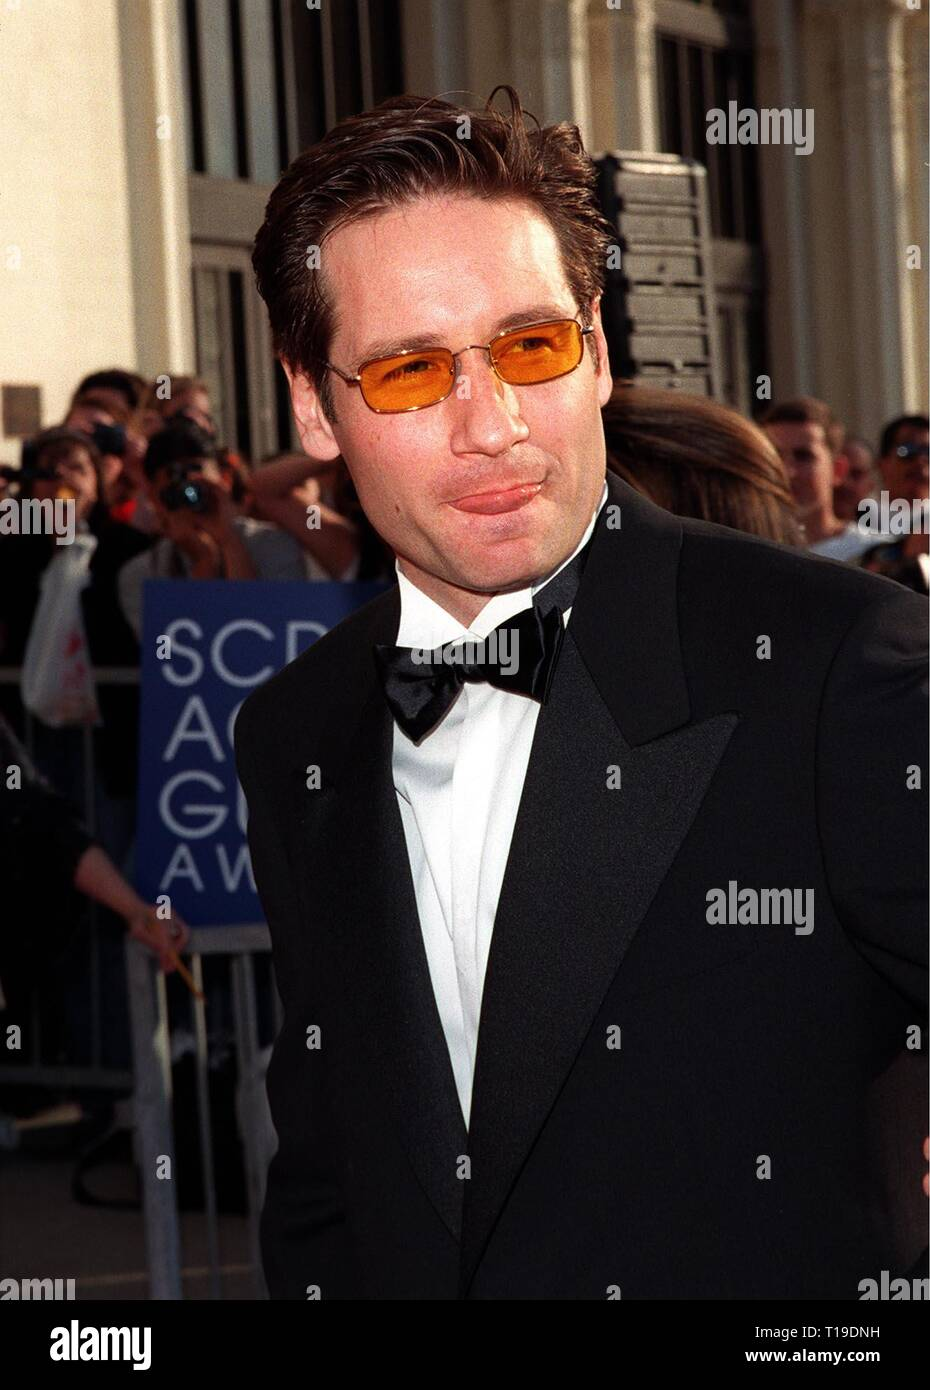 LOS ANGELES, CA - March 8, 1998: 'X-Files' star DAVID DUCHOVNY at the Screen Actors Guild  Awards in Los Angeles. - Stock Image